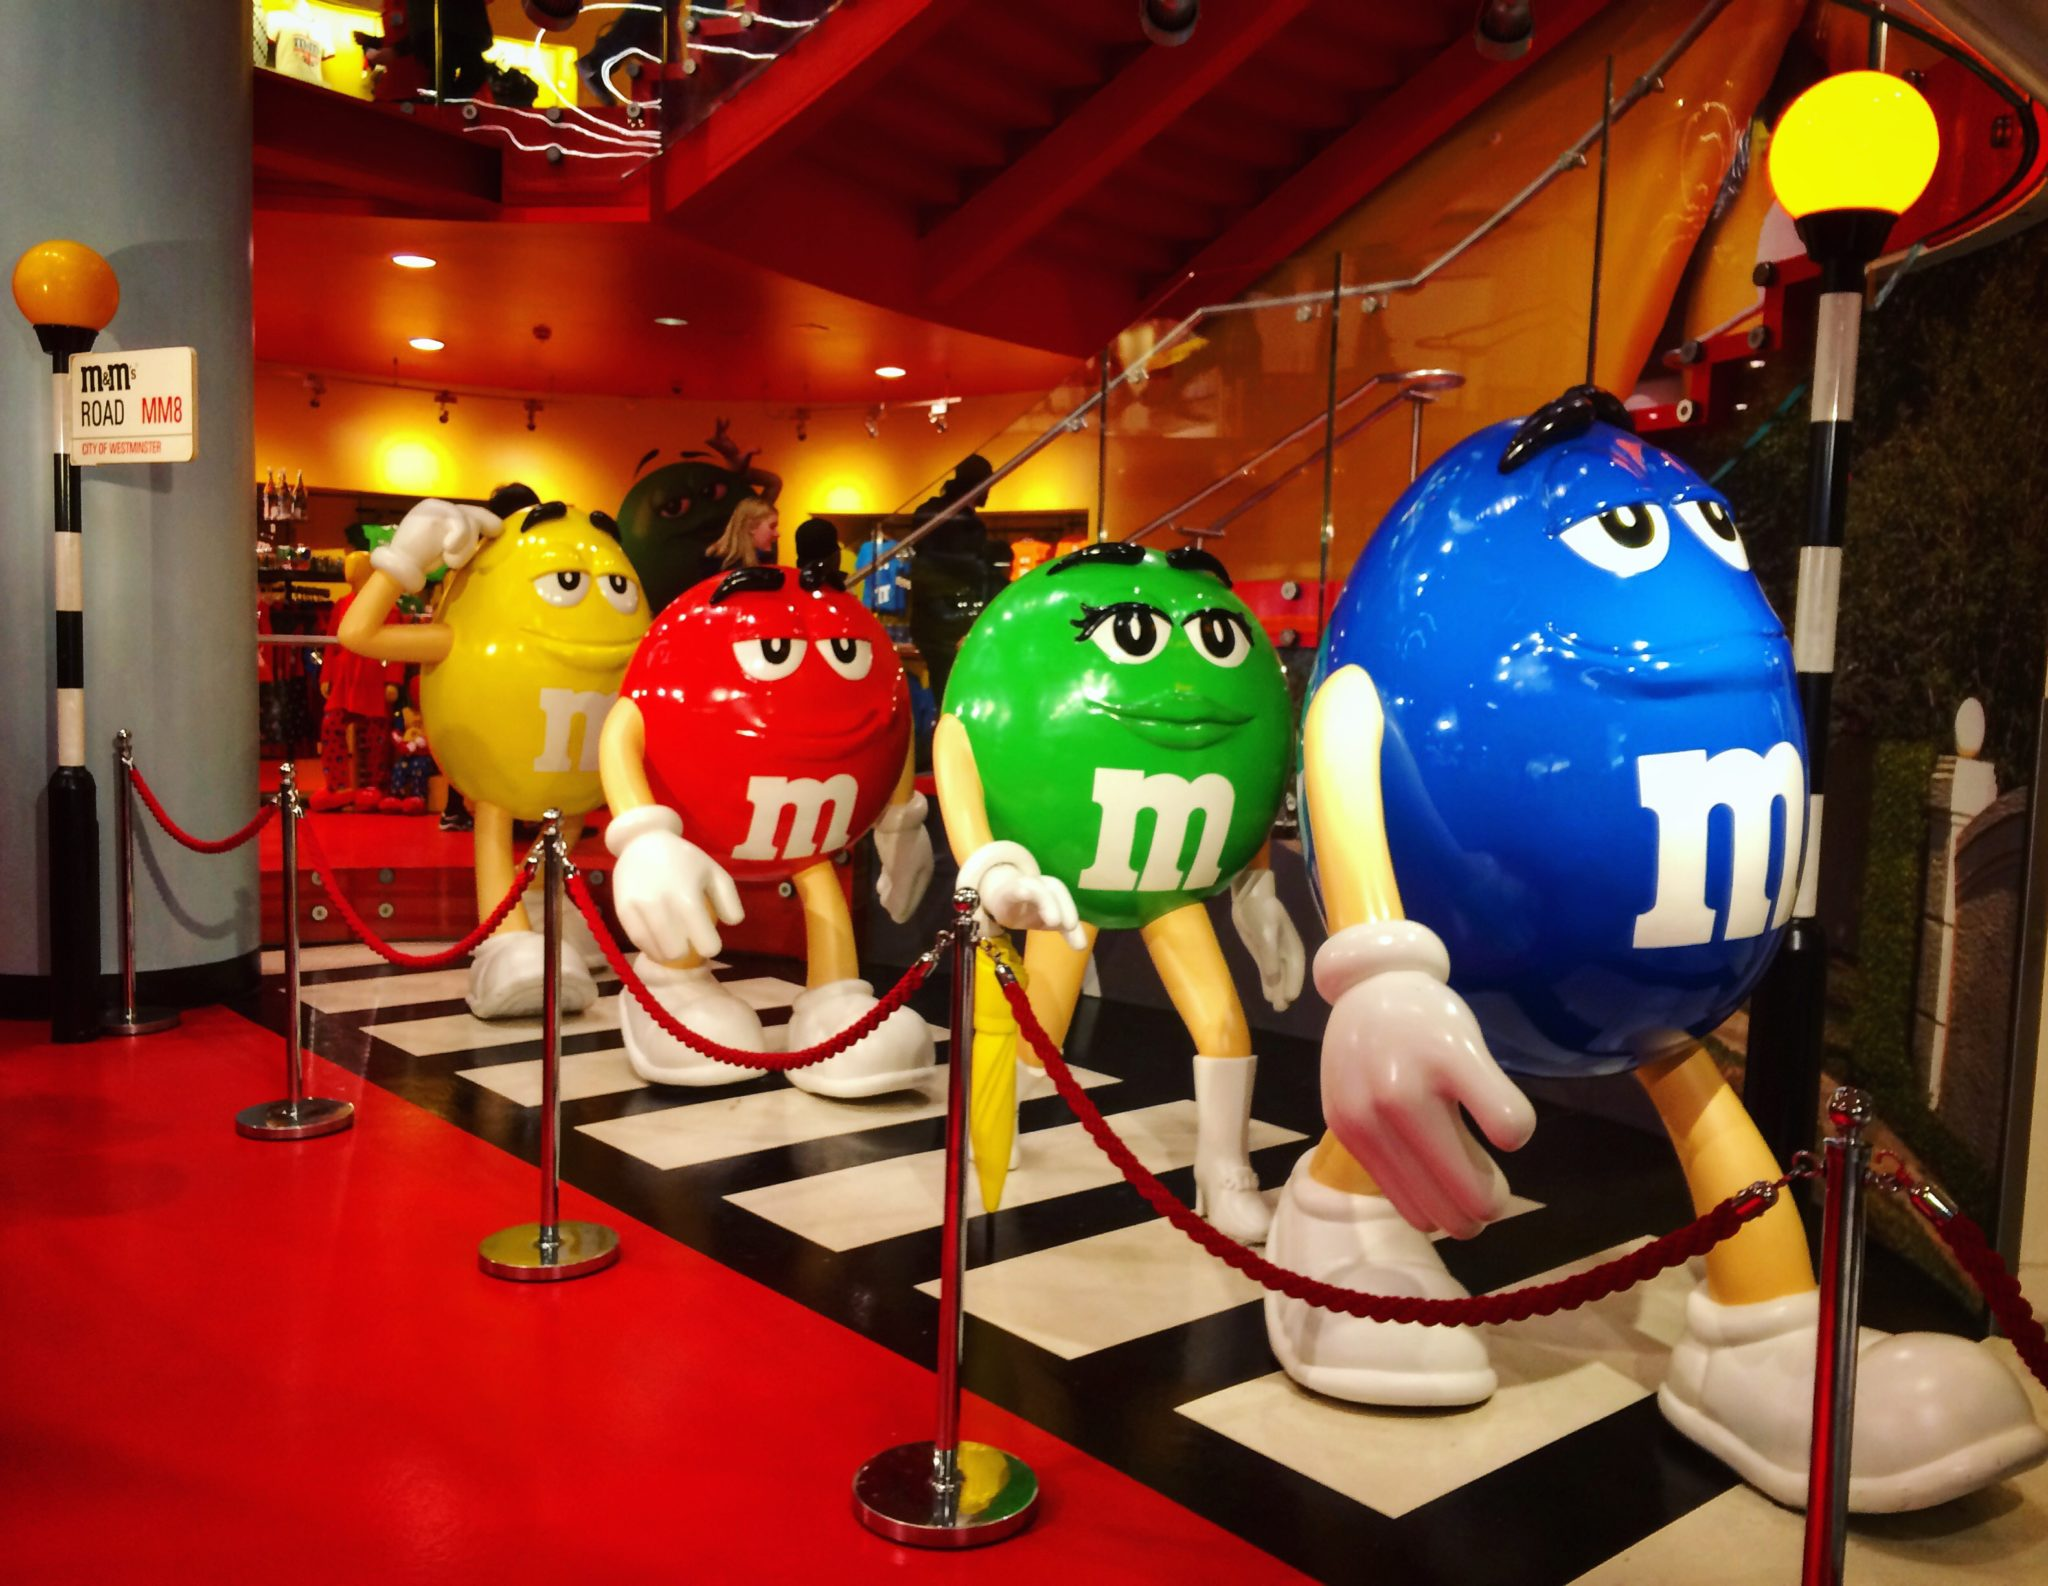 MnM World Leicester Square